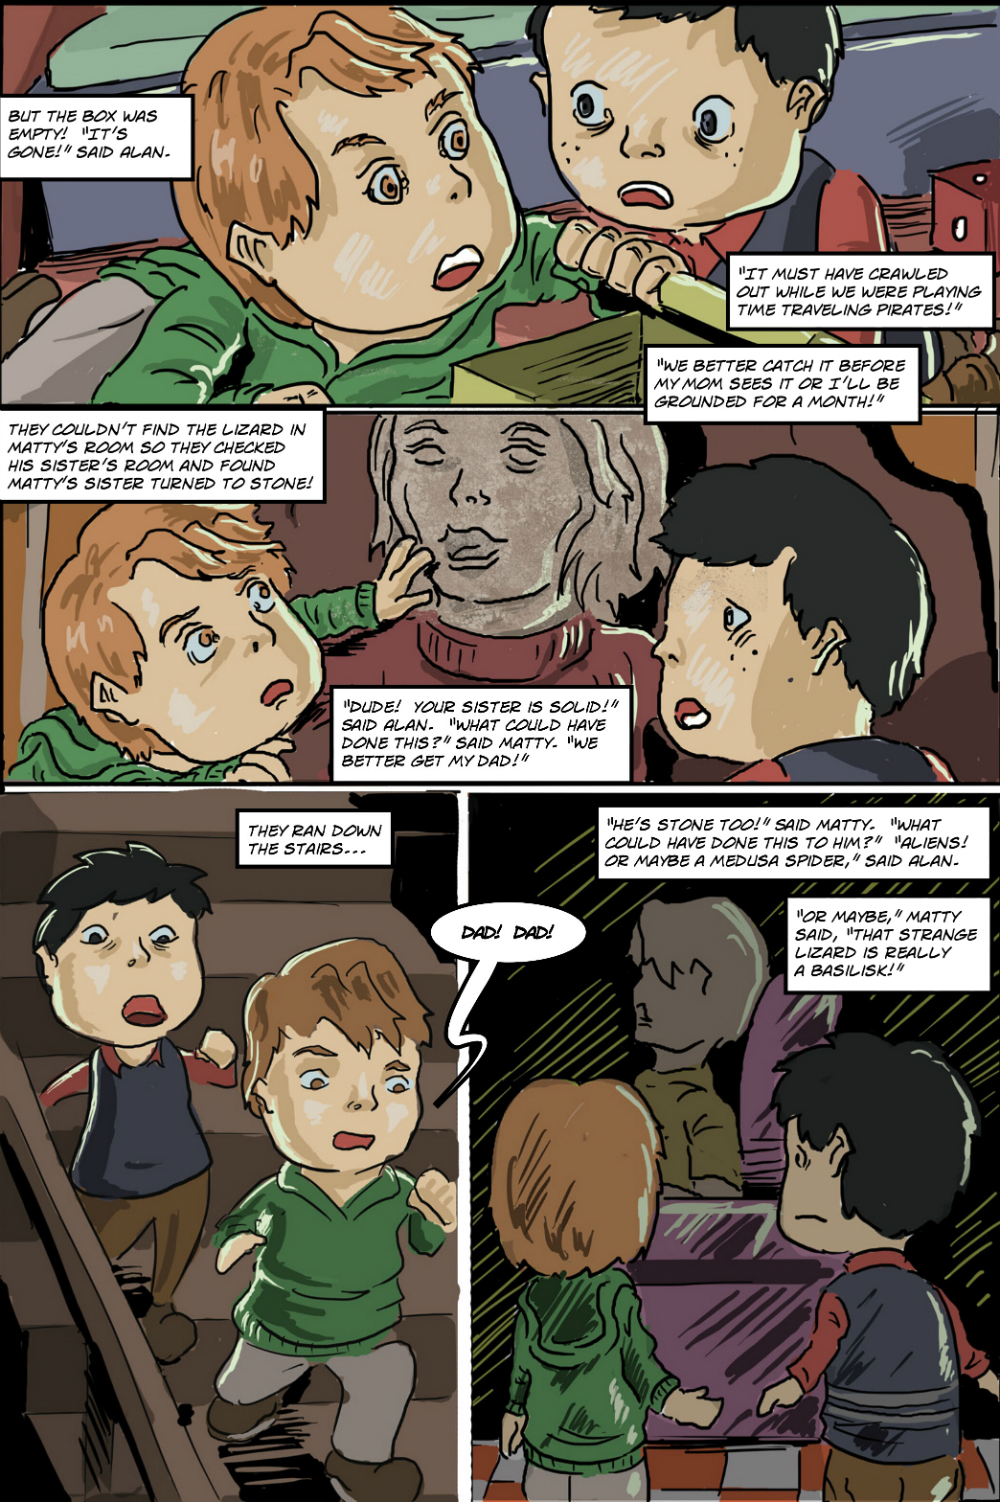 BASILISK IN THE HOUSE page 6 - story 18 in The Book of Lies